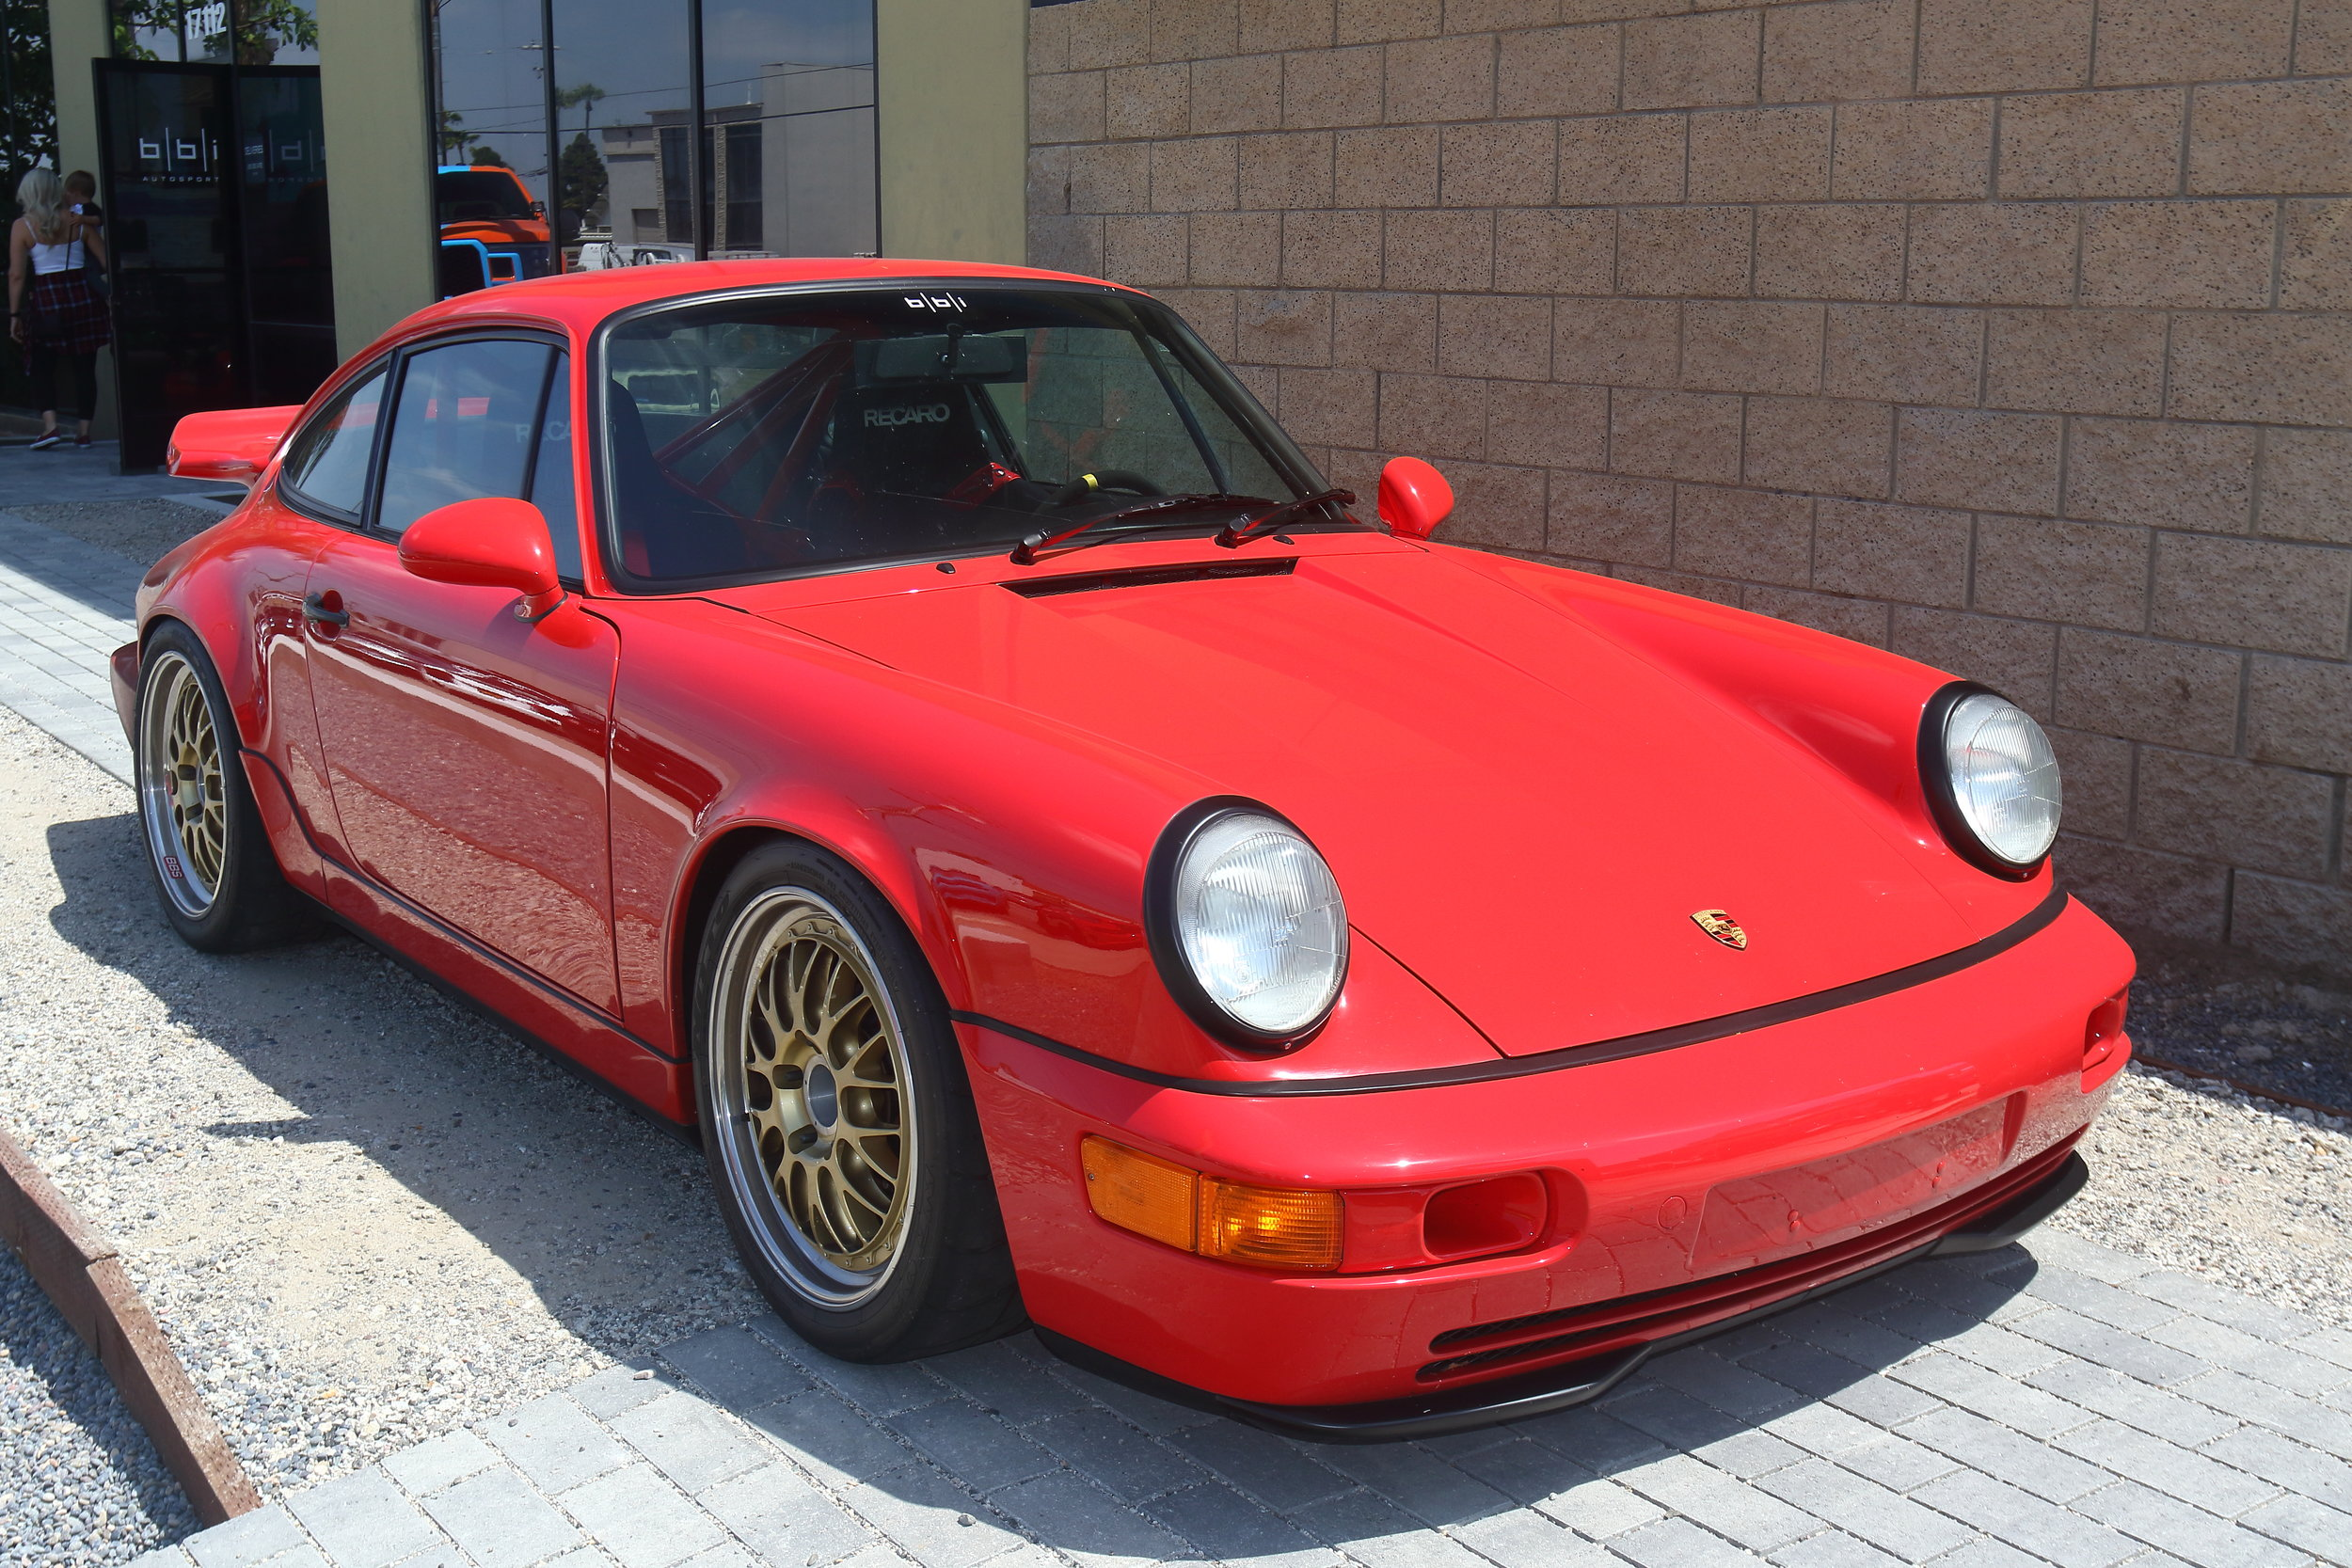 Chris' Porsche 964 CS build featuring Recaro Pole Position Seats, BBS E88 Wheels, and Brembo GT Brake Kit bolted to our BBi Autosport Billet Uprights.